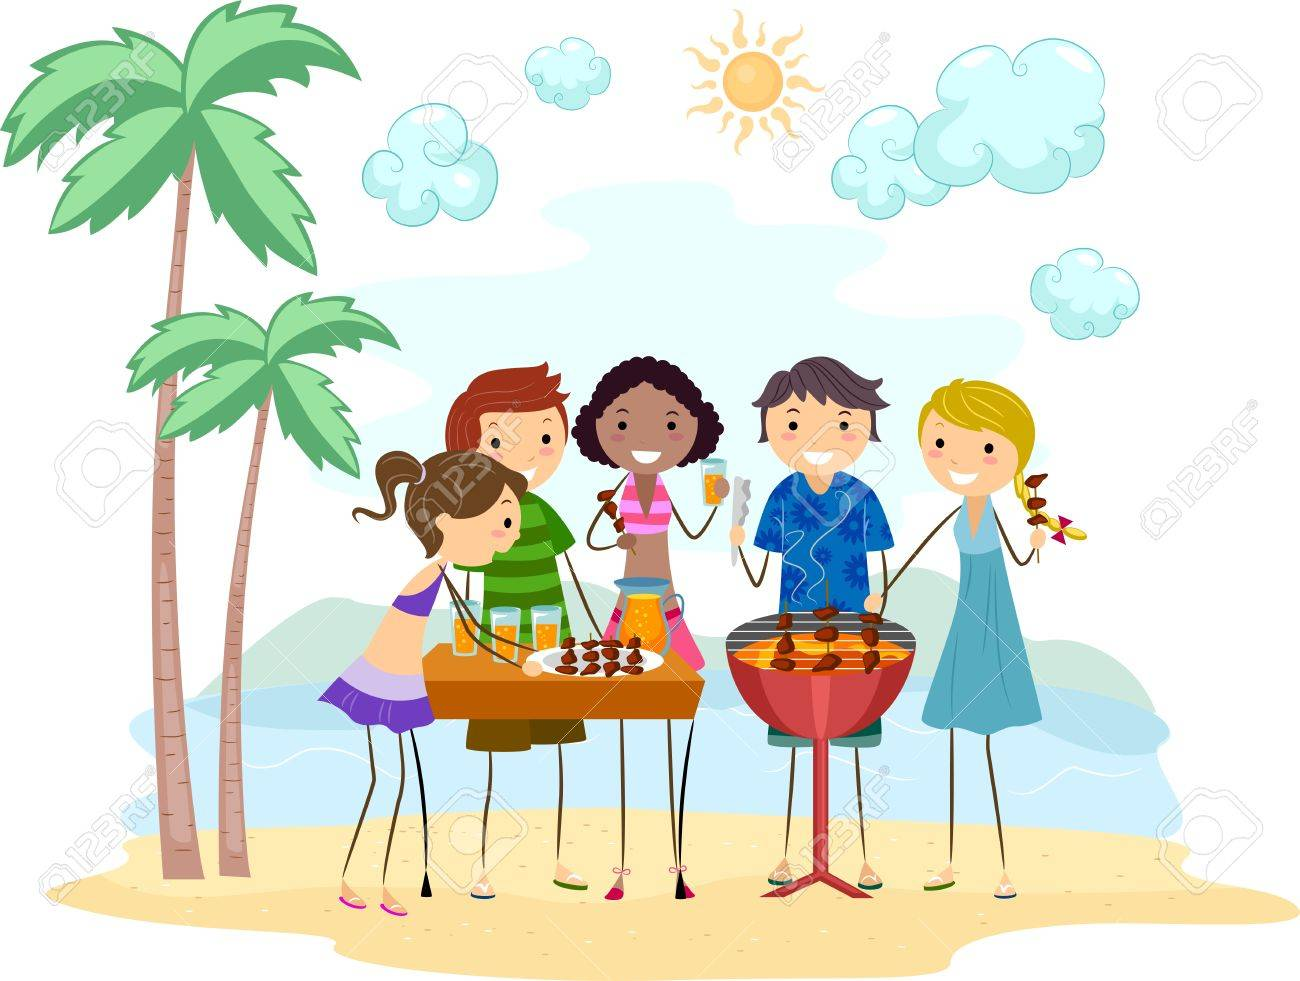 Illustration of Friends Having a Barbecue Party Stock Photo - 9991439